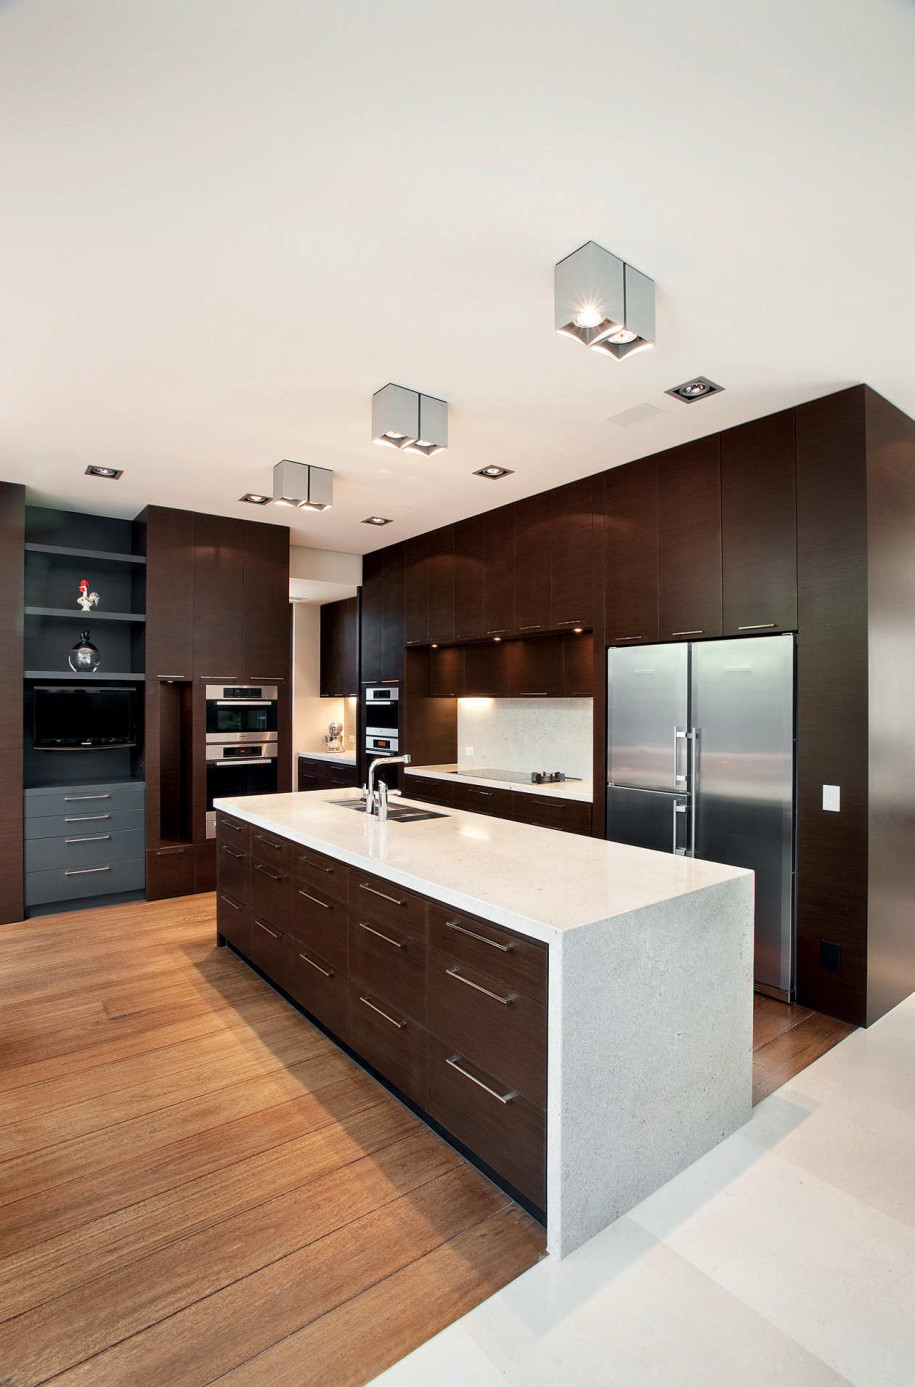 55-Awesome-Modern-Kitchen-Designs-Show-Up-Dining-Area-Awesome-The-Best-Kitchen-Designs Frugal And Stunning kitchen decoration ideas